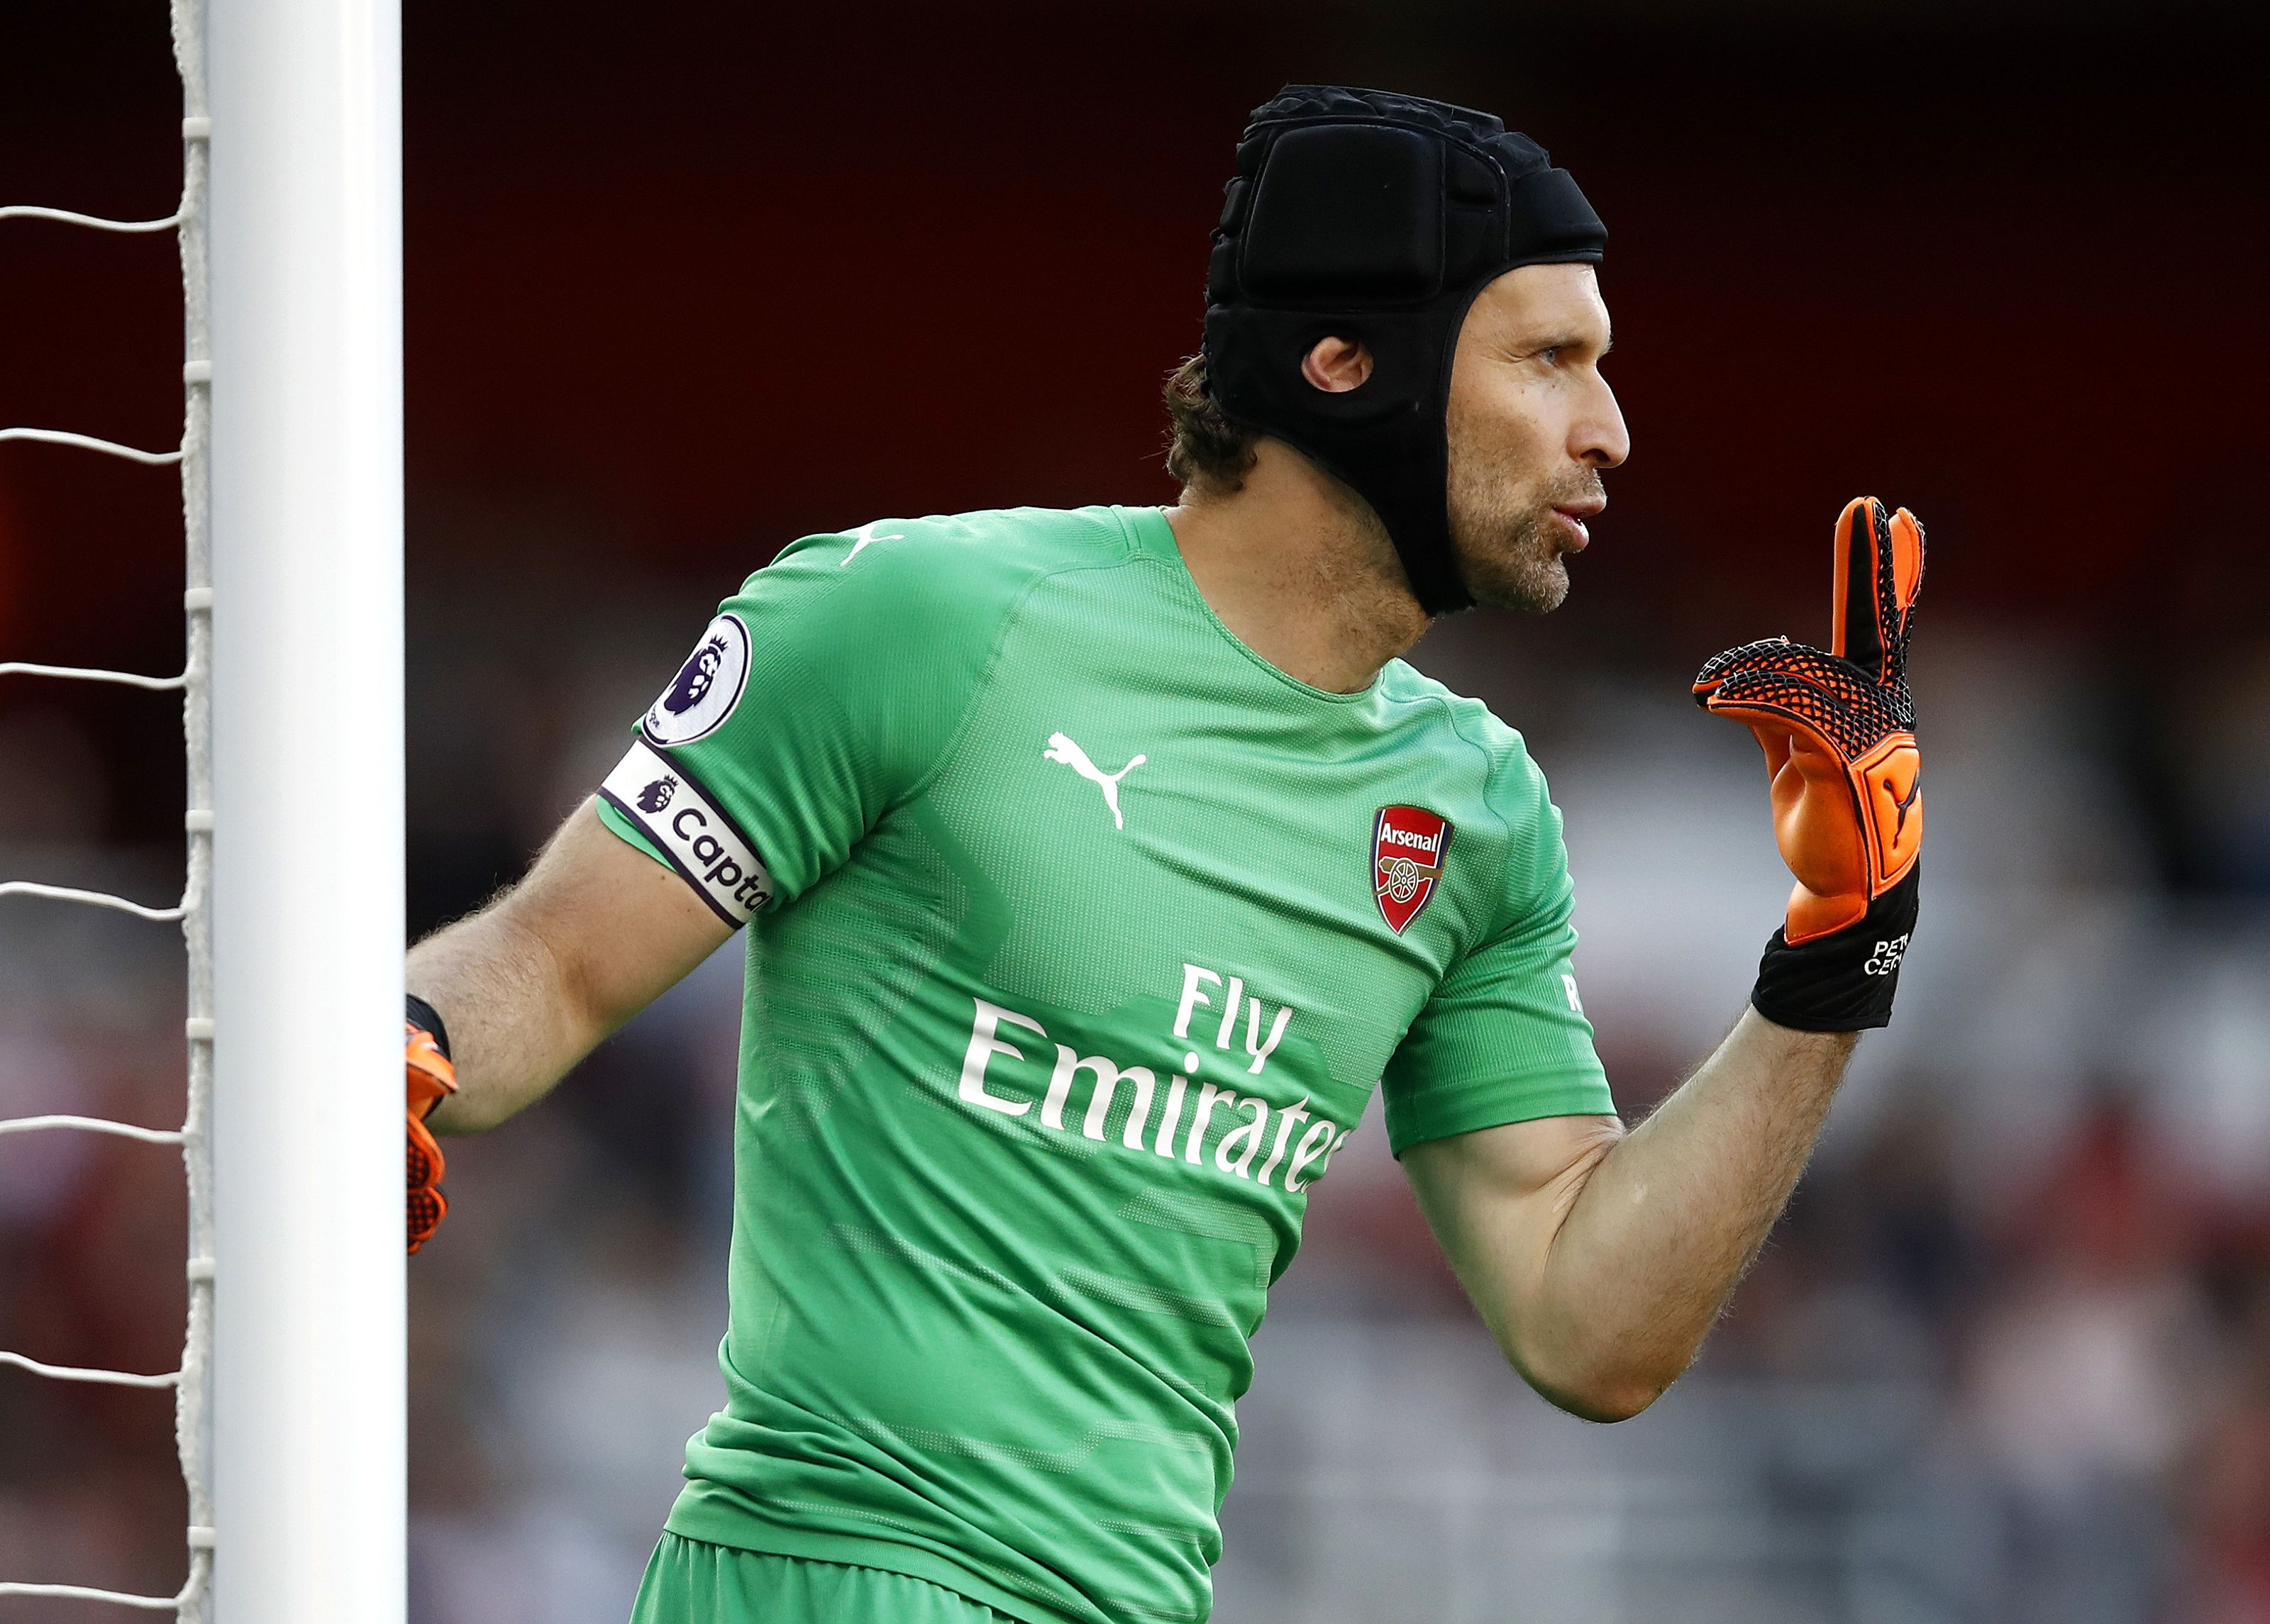 Cech made six saves in Arsenal's 2-0 victory over Everton on Sunday